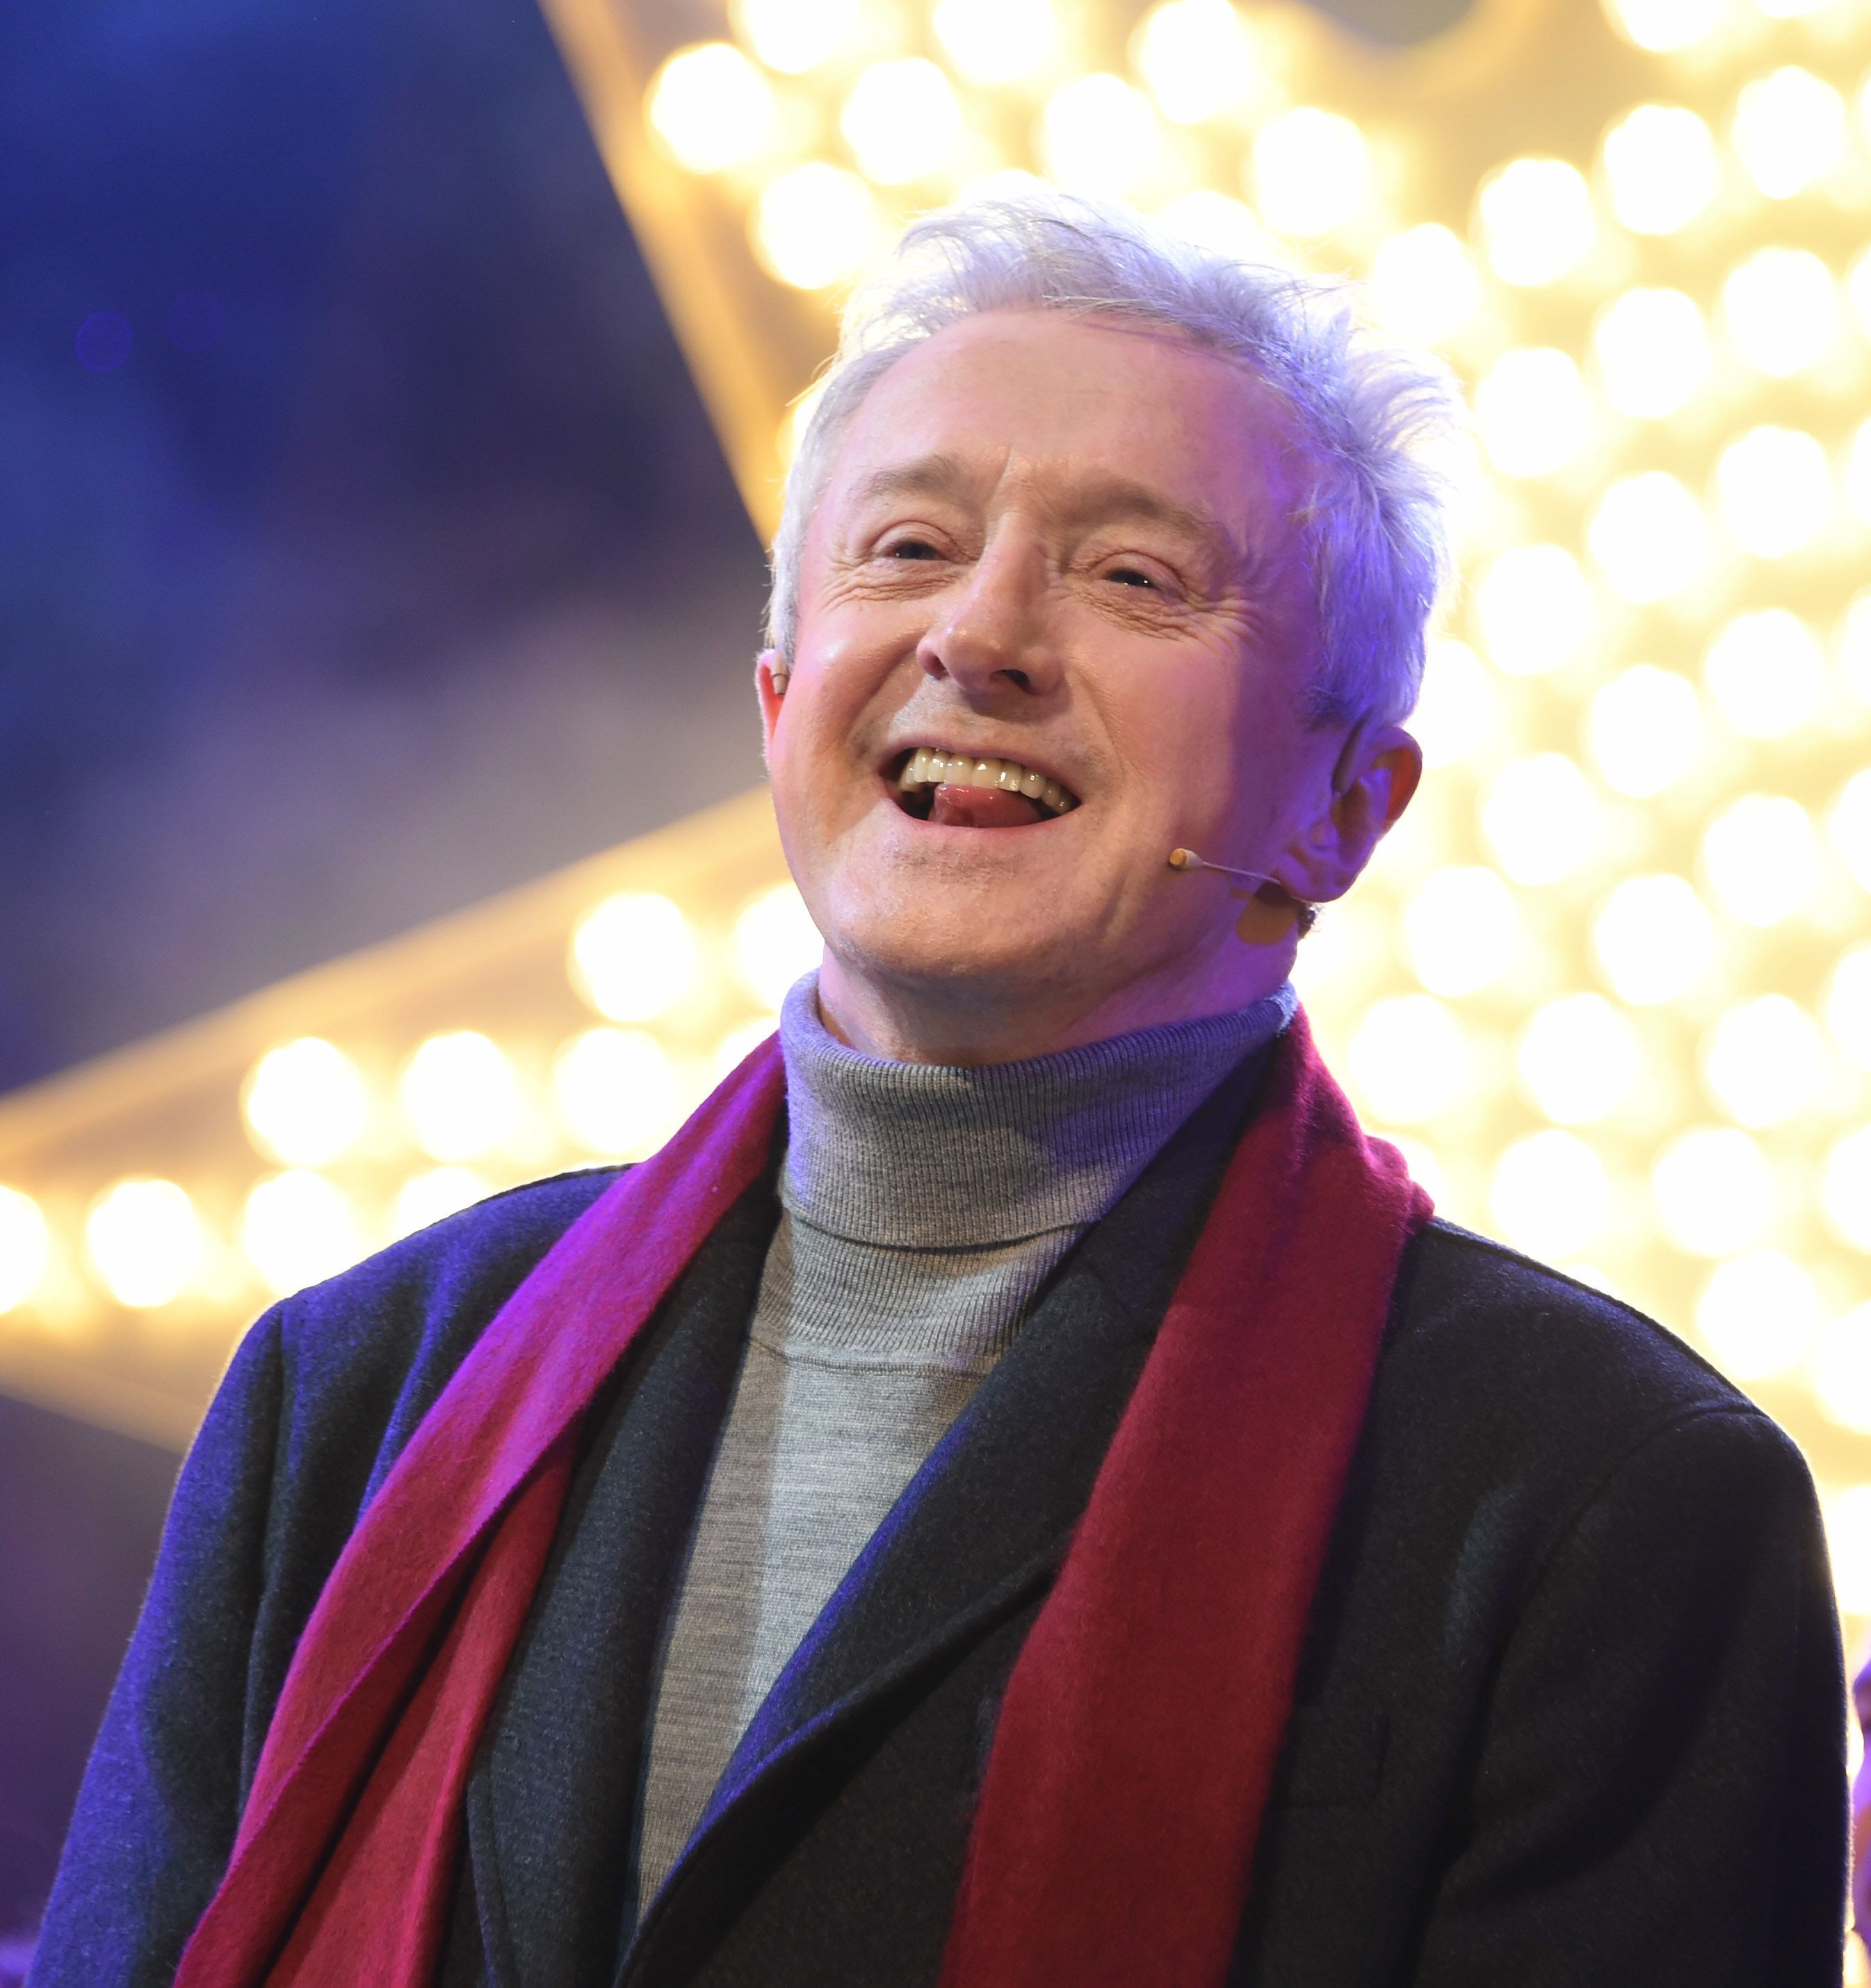 Louis Walsh Insists His 'X Factor' Contract Is 'Watertight' As He Responds To Axe Claims